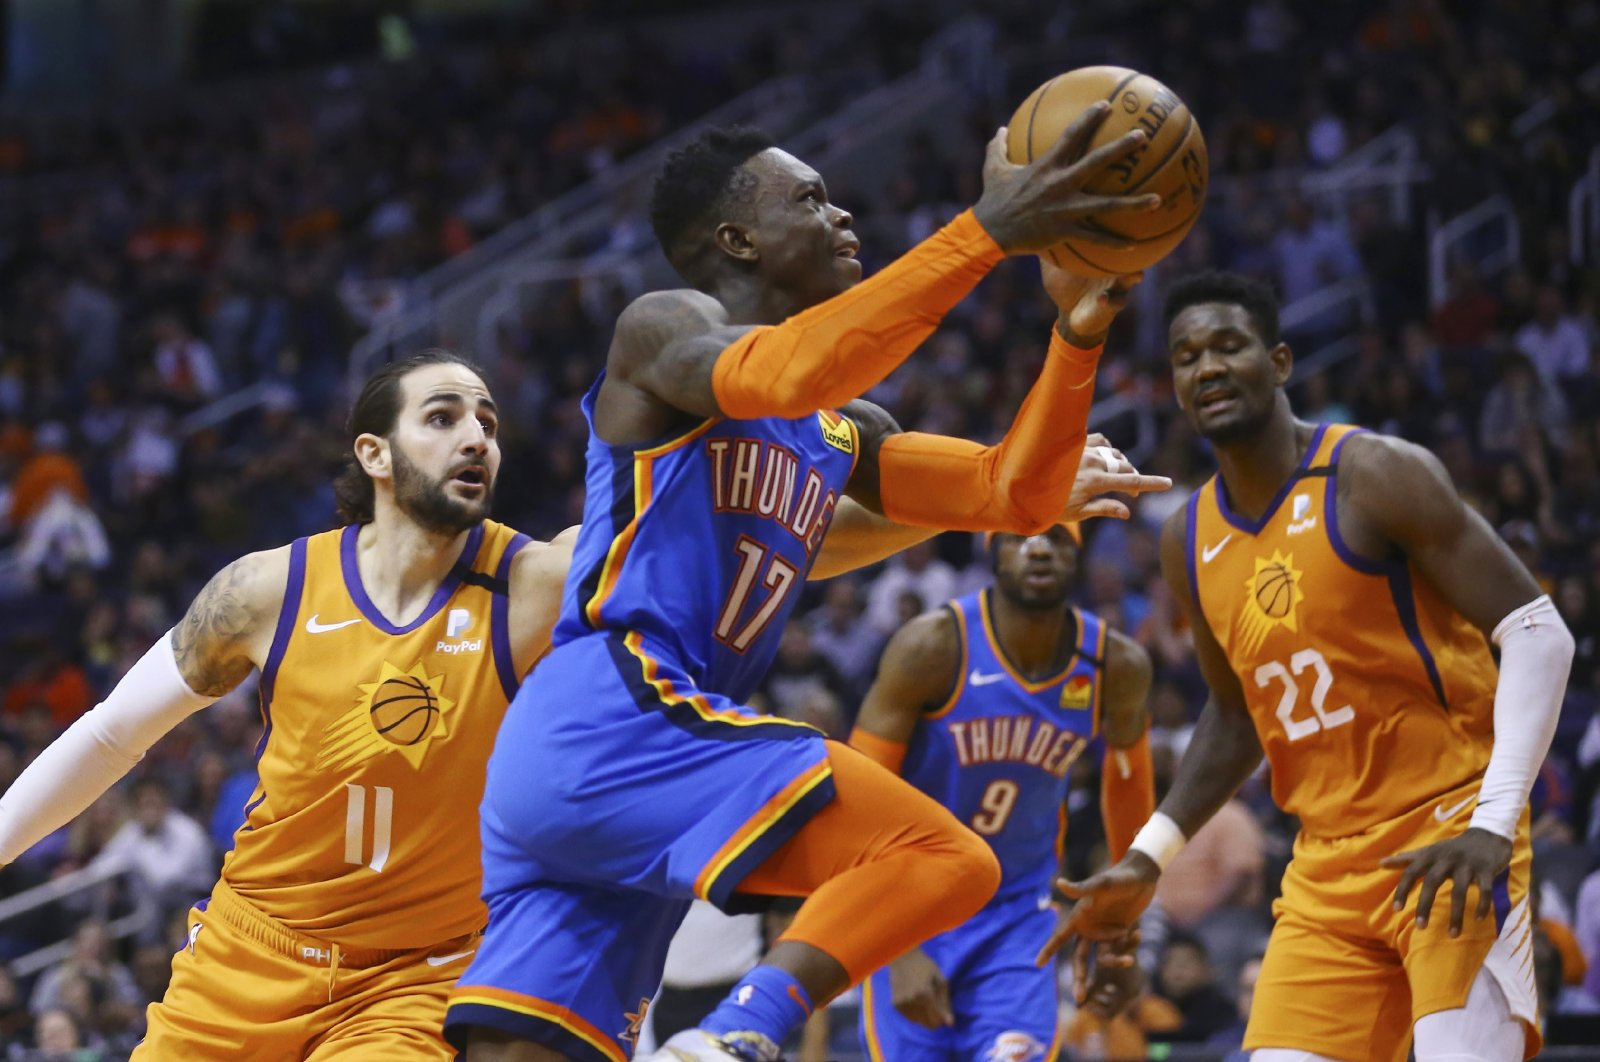 Oklahoma City Thunder's Dennis Schroder (C) drives past Phoenix Suns' Ricky Rubio (L) during an NBA game in Phoenix, U.S., Jan. 31, 2020. (AP Photo)